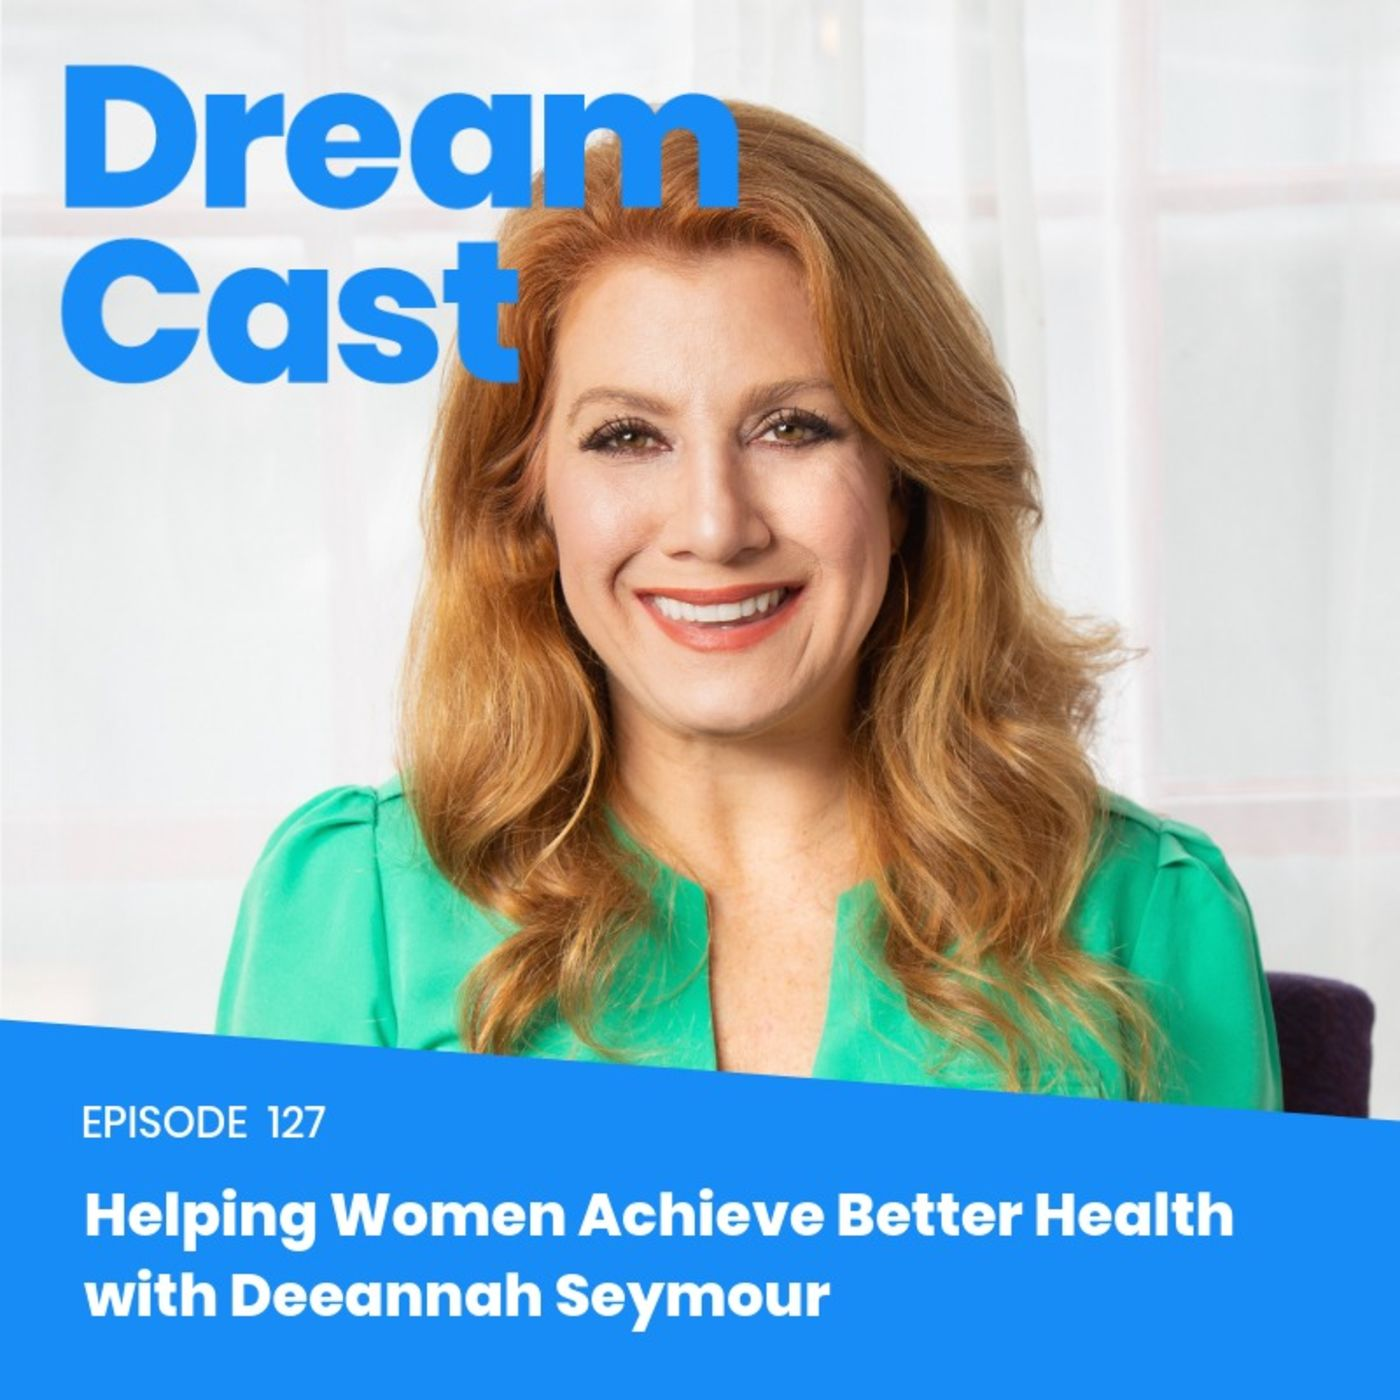 Episode 128 - Helping Women Achieve Better Health with Deeannah Seymour